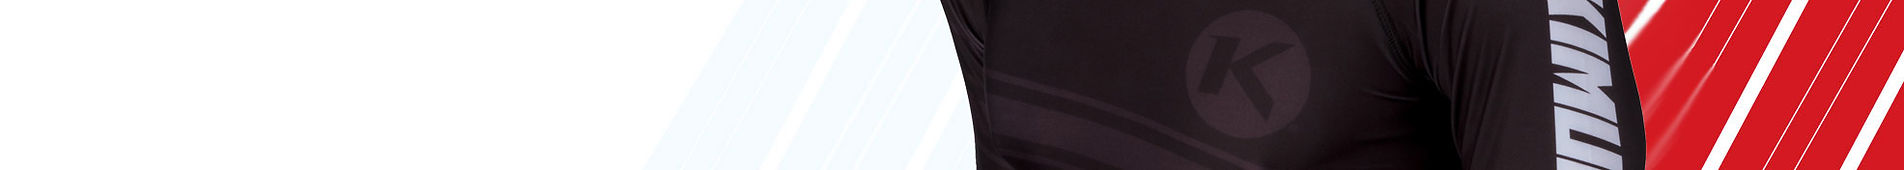 Compression-Wear-banner.jpg